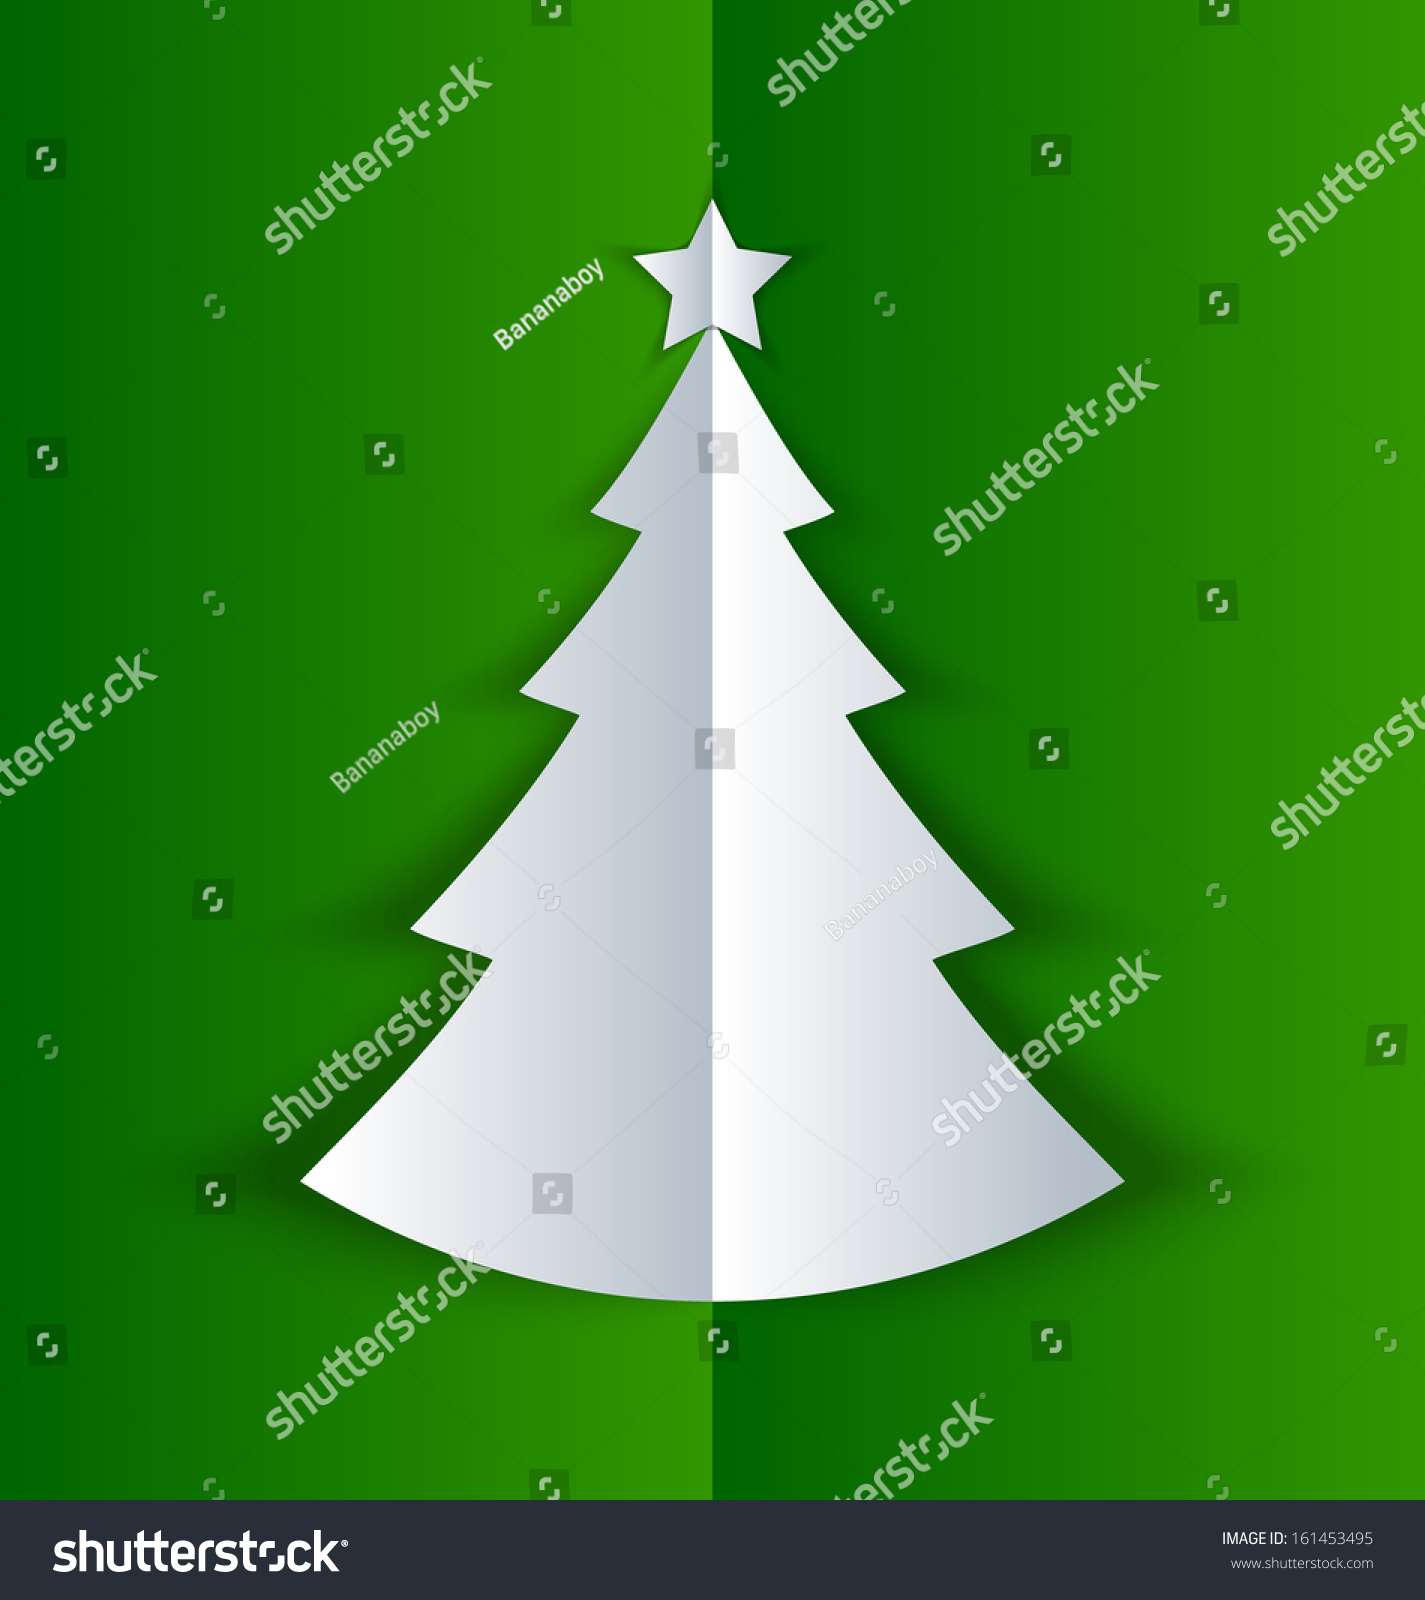 Simple Christmas Tree Made Of Folded Paper With Shadow On Green Background